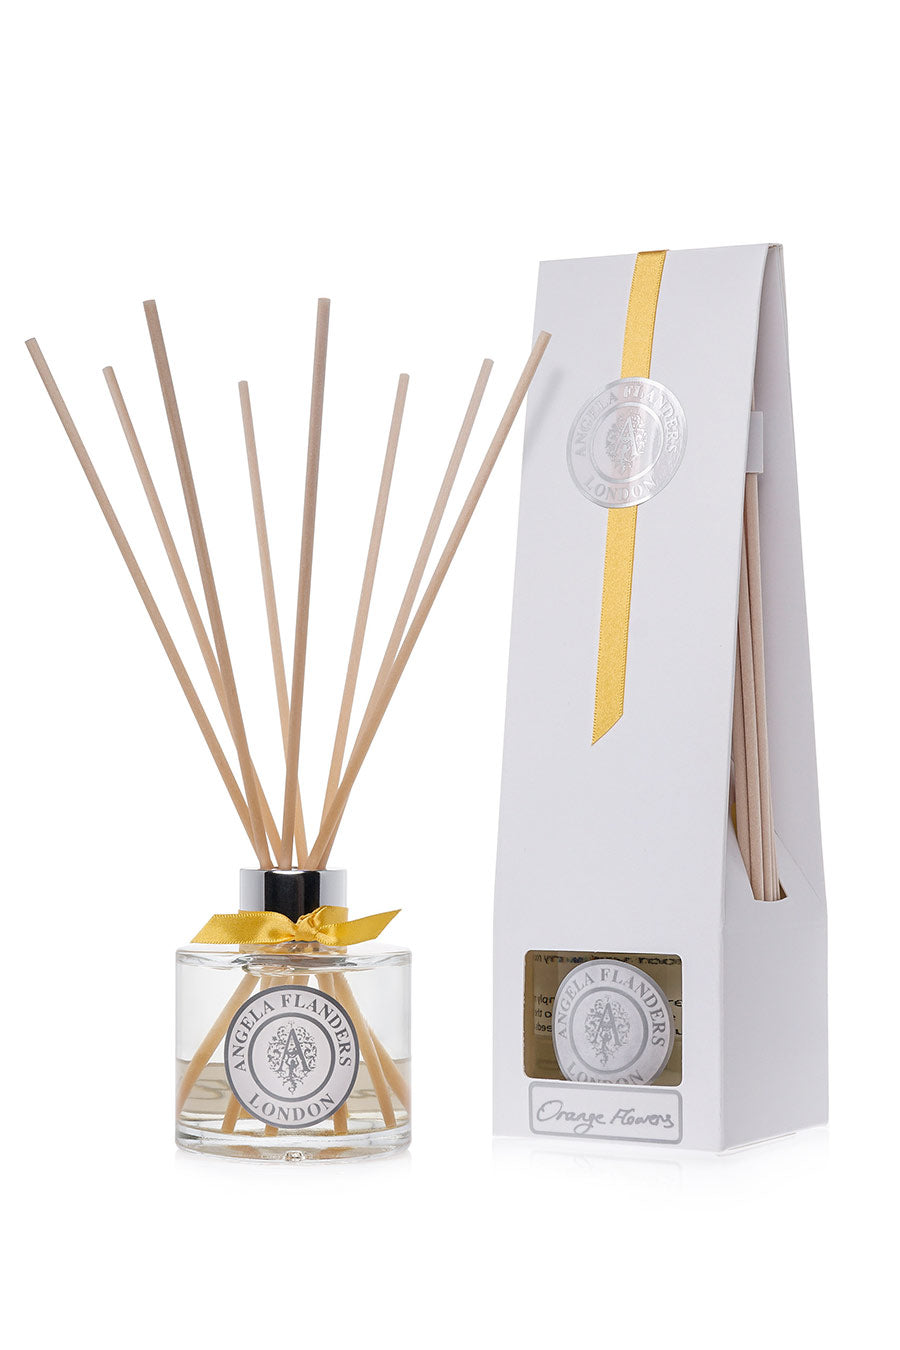 Angela Flanders Orange Blossom Reed Diffuser